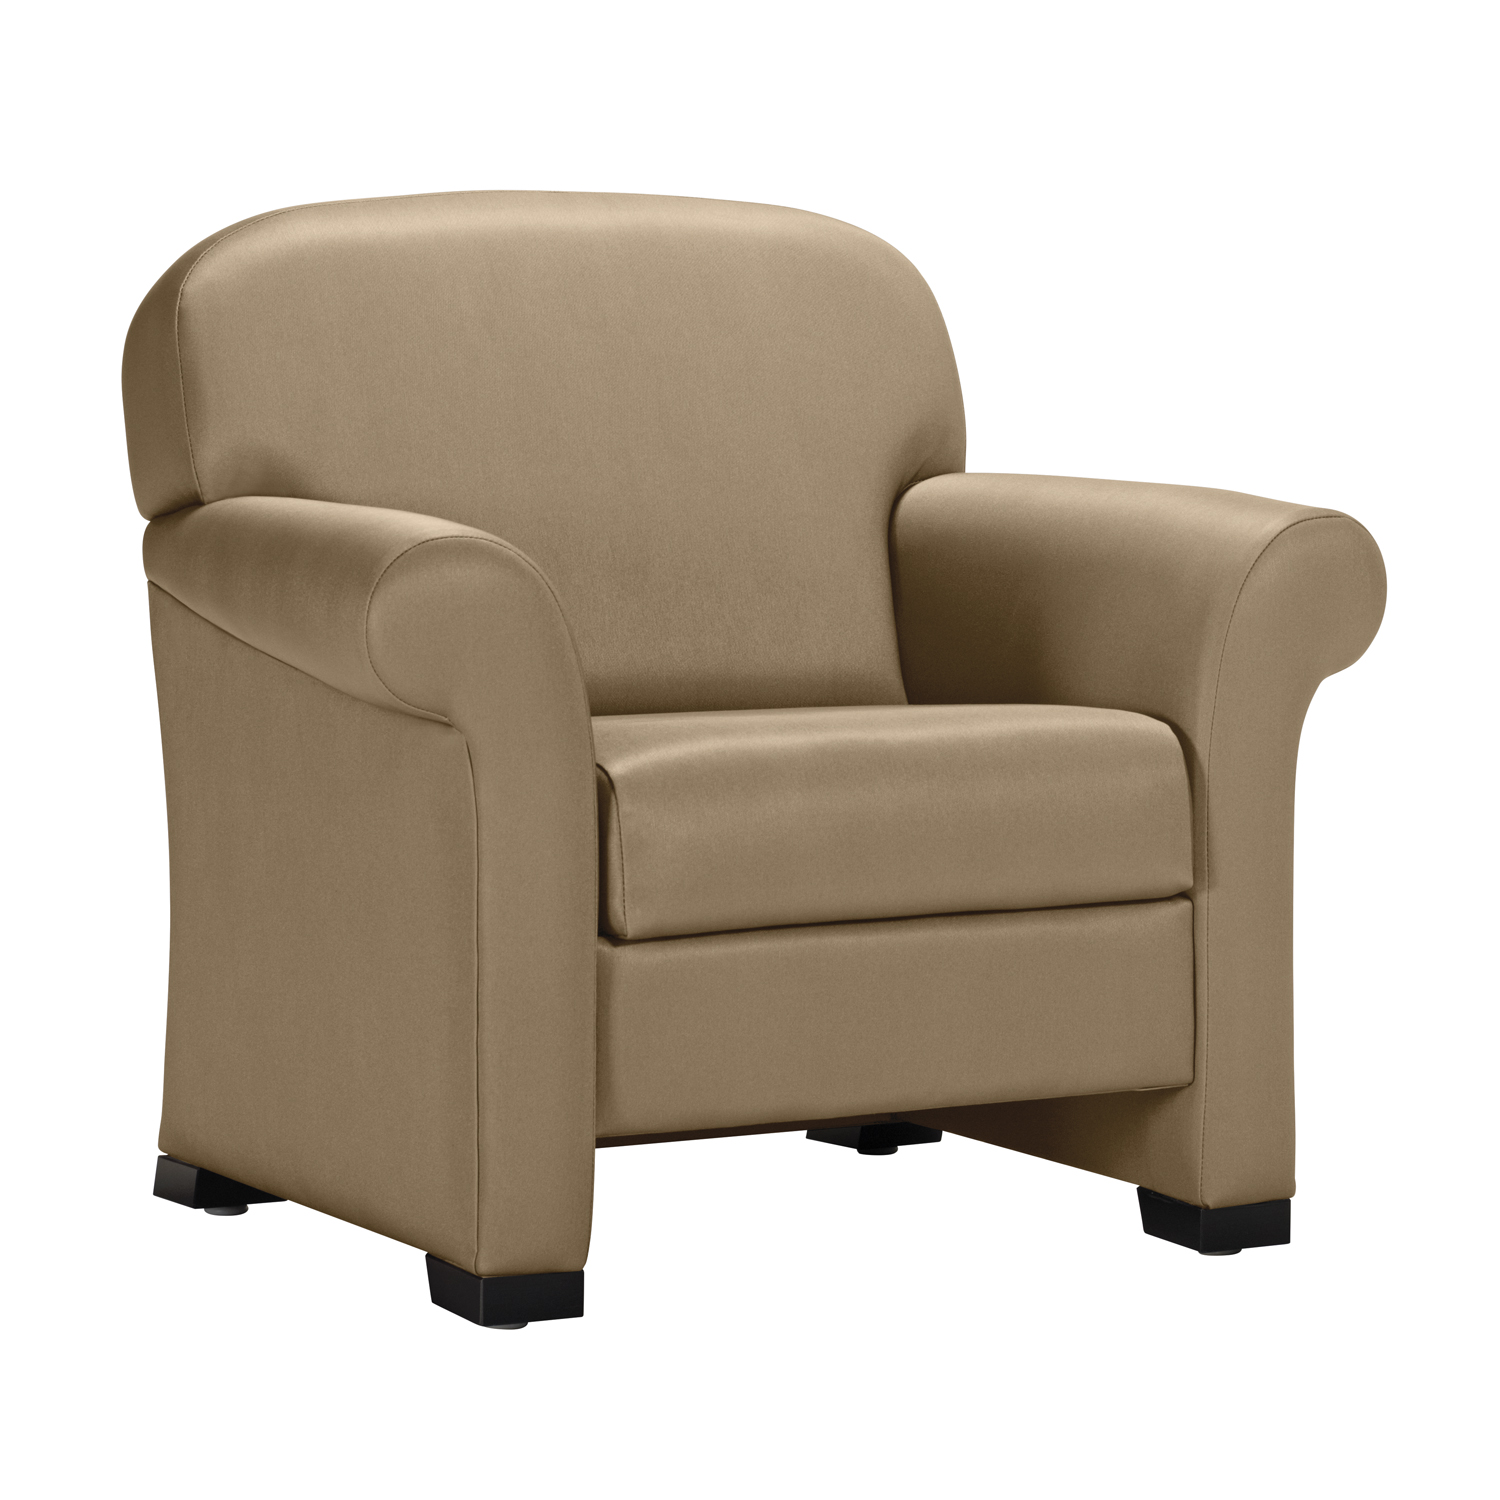 Bishop's Chair Global Bishop Single Seating Lounge Chair Grand And Toy